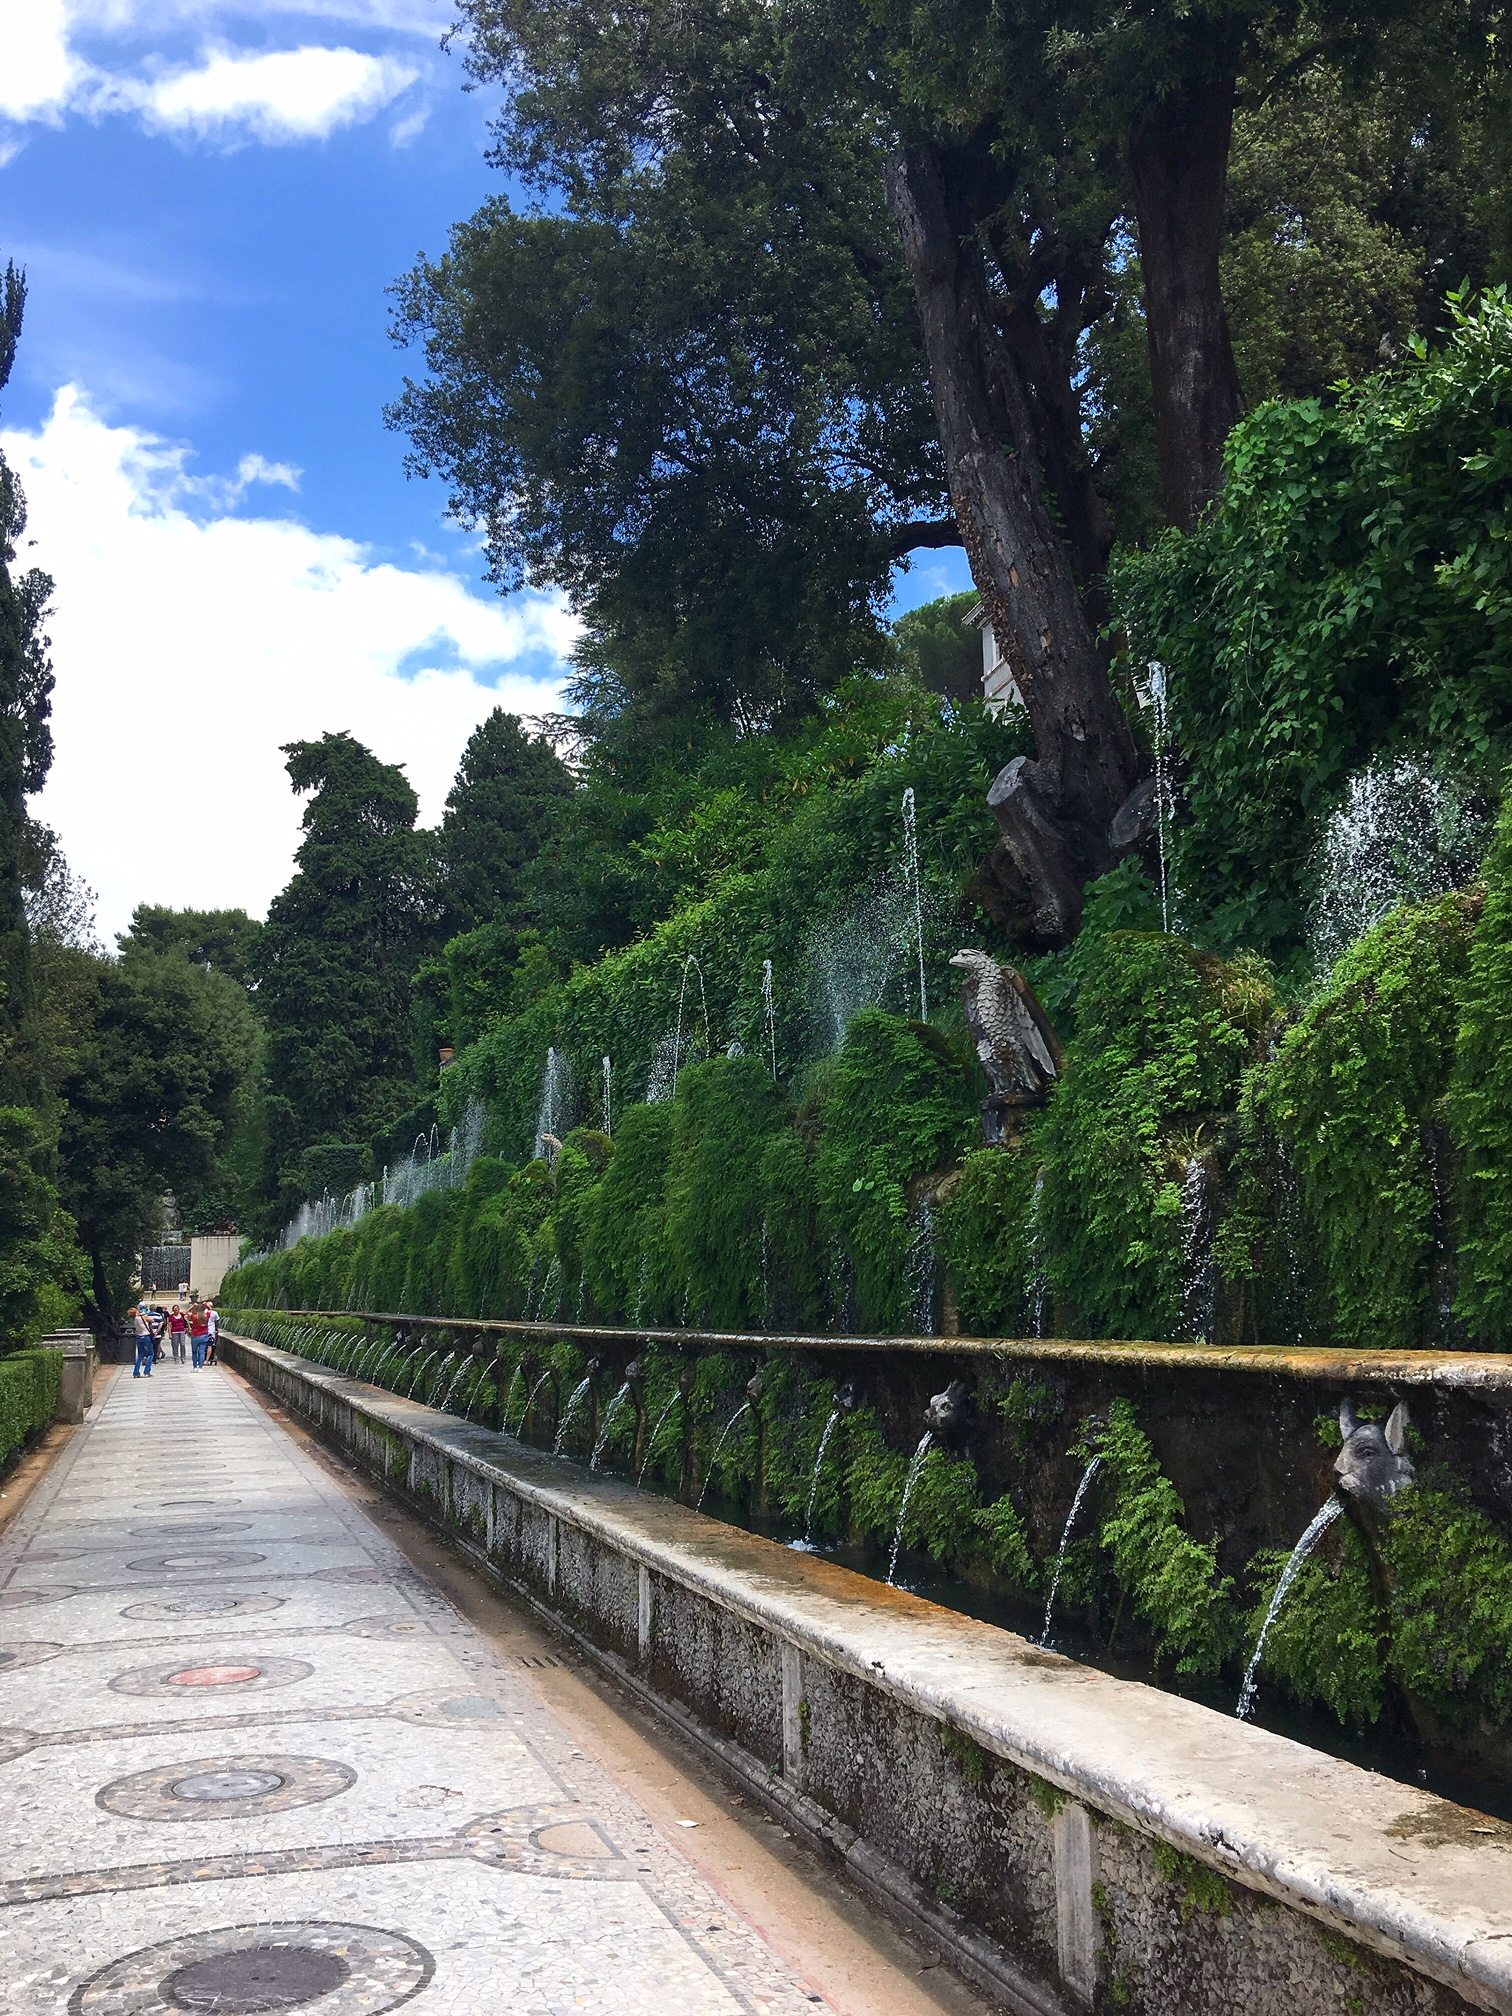 The incredible fountains at Villa D'Este in Tivoli. Villa d'Este is one of the best day trips from Rome, read on to find out about 9 other day trips from Rome that are accessible by train.